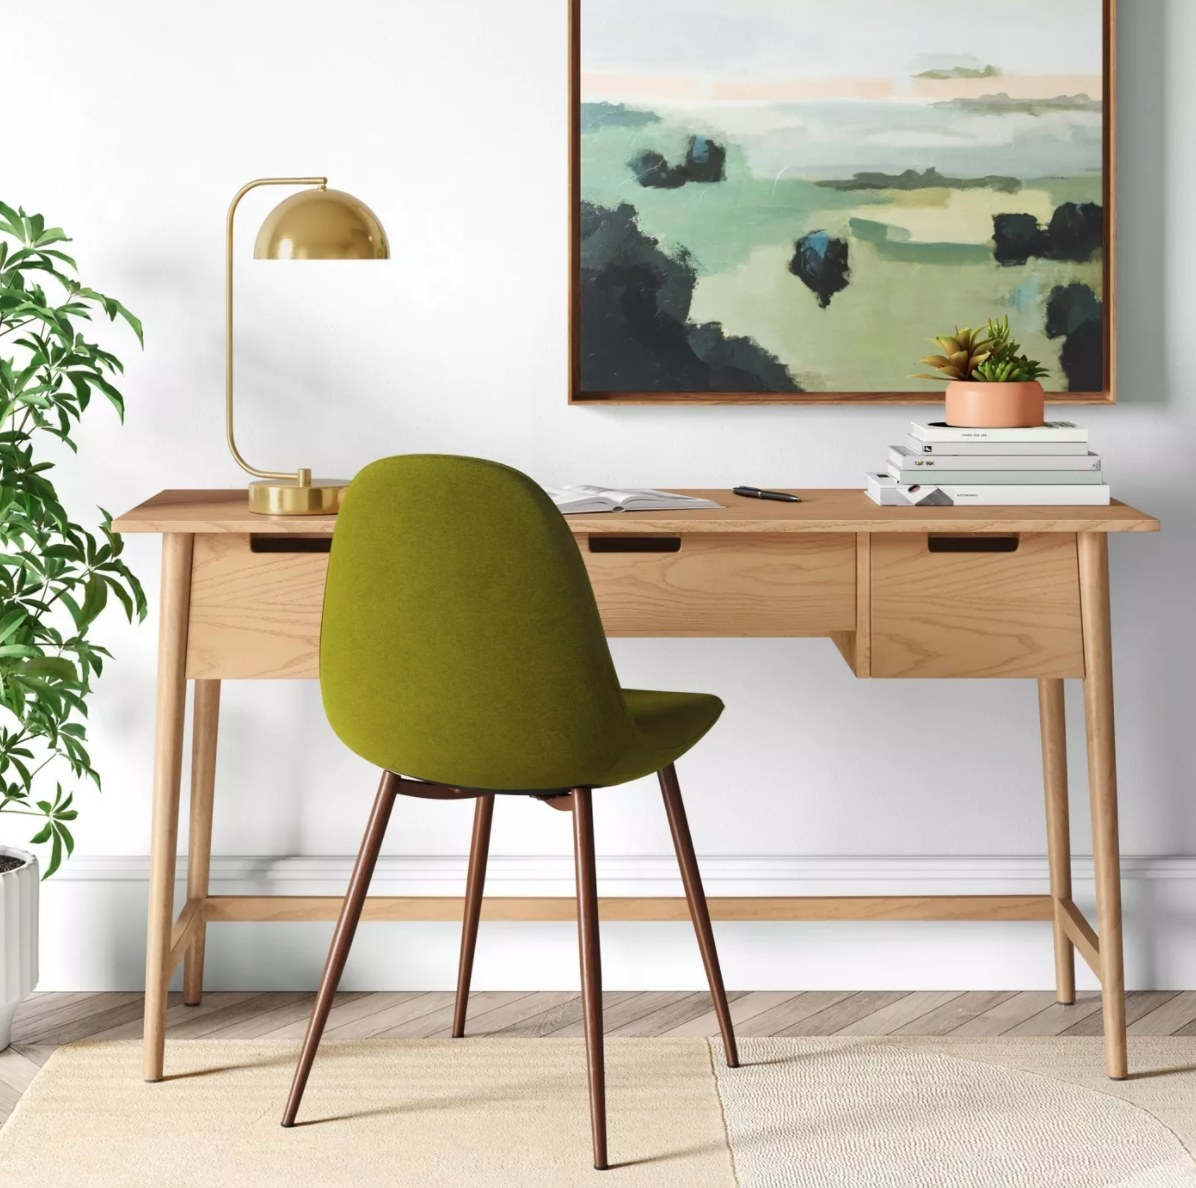 The large wood writing desk in natural with a green felt chair in front of it